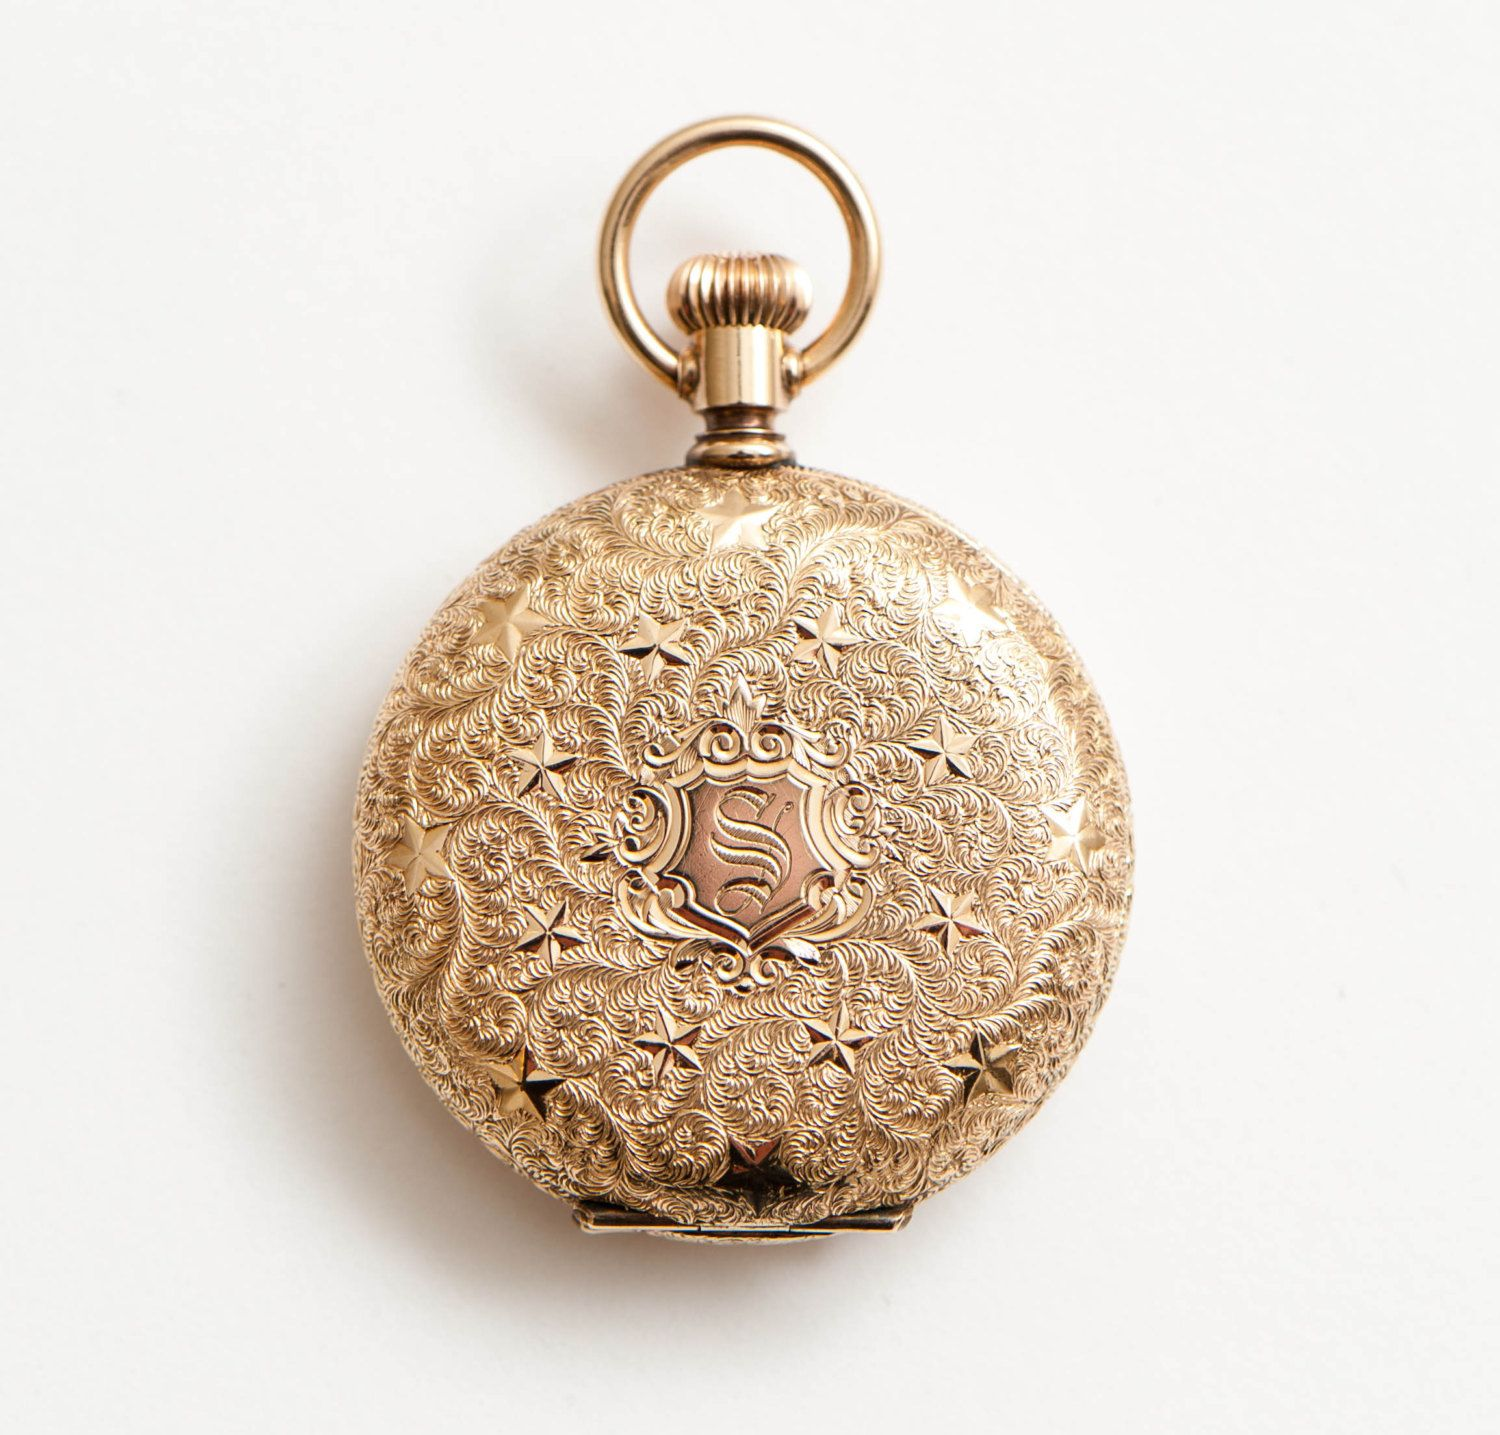 Solid gold 14k antique ladies waltham pocket watch intricate solid gold 14k antique ladies waltham pocket watch intricate victorian pendant watch necklace fob mozeypictures Images